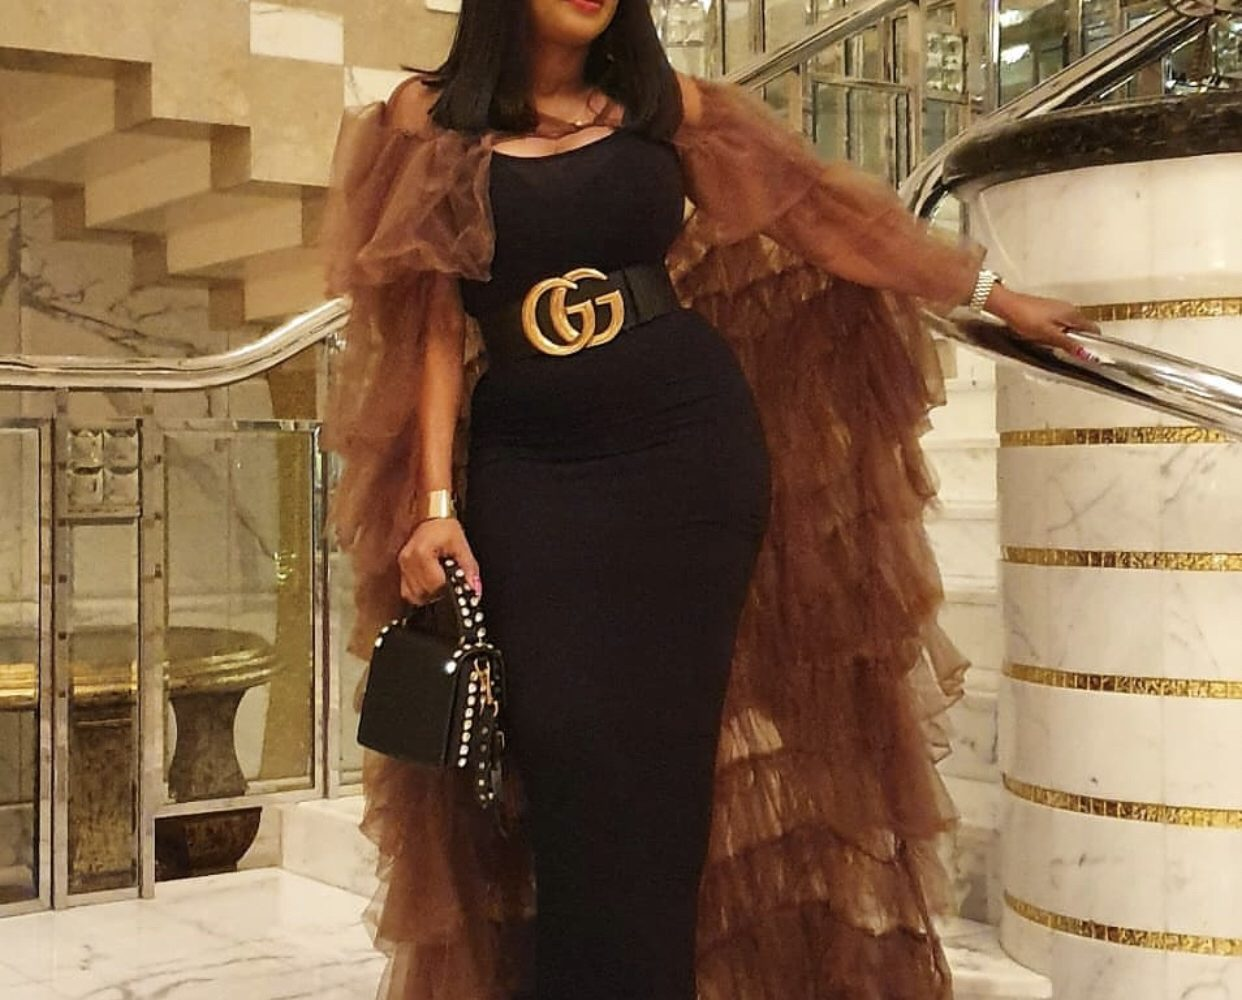 Popular Abuja Based Fashion Designer Ogodor Receives Award While On Vacation In Dubai Photos Wanbaba Blog